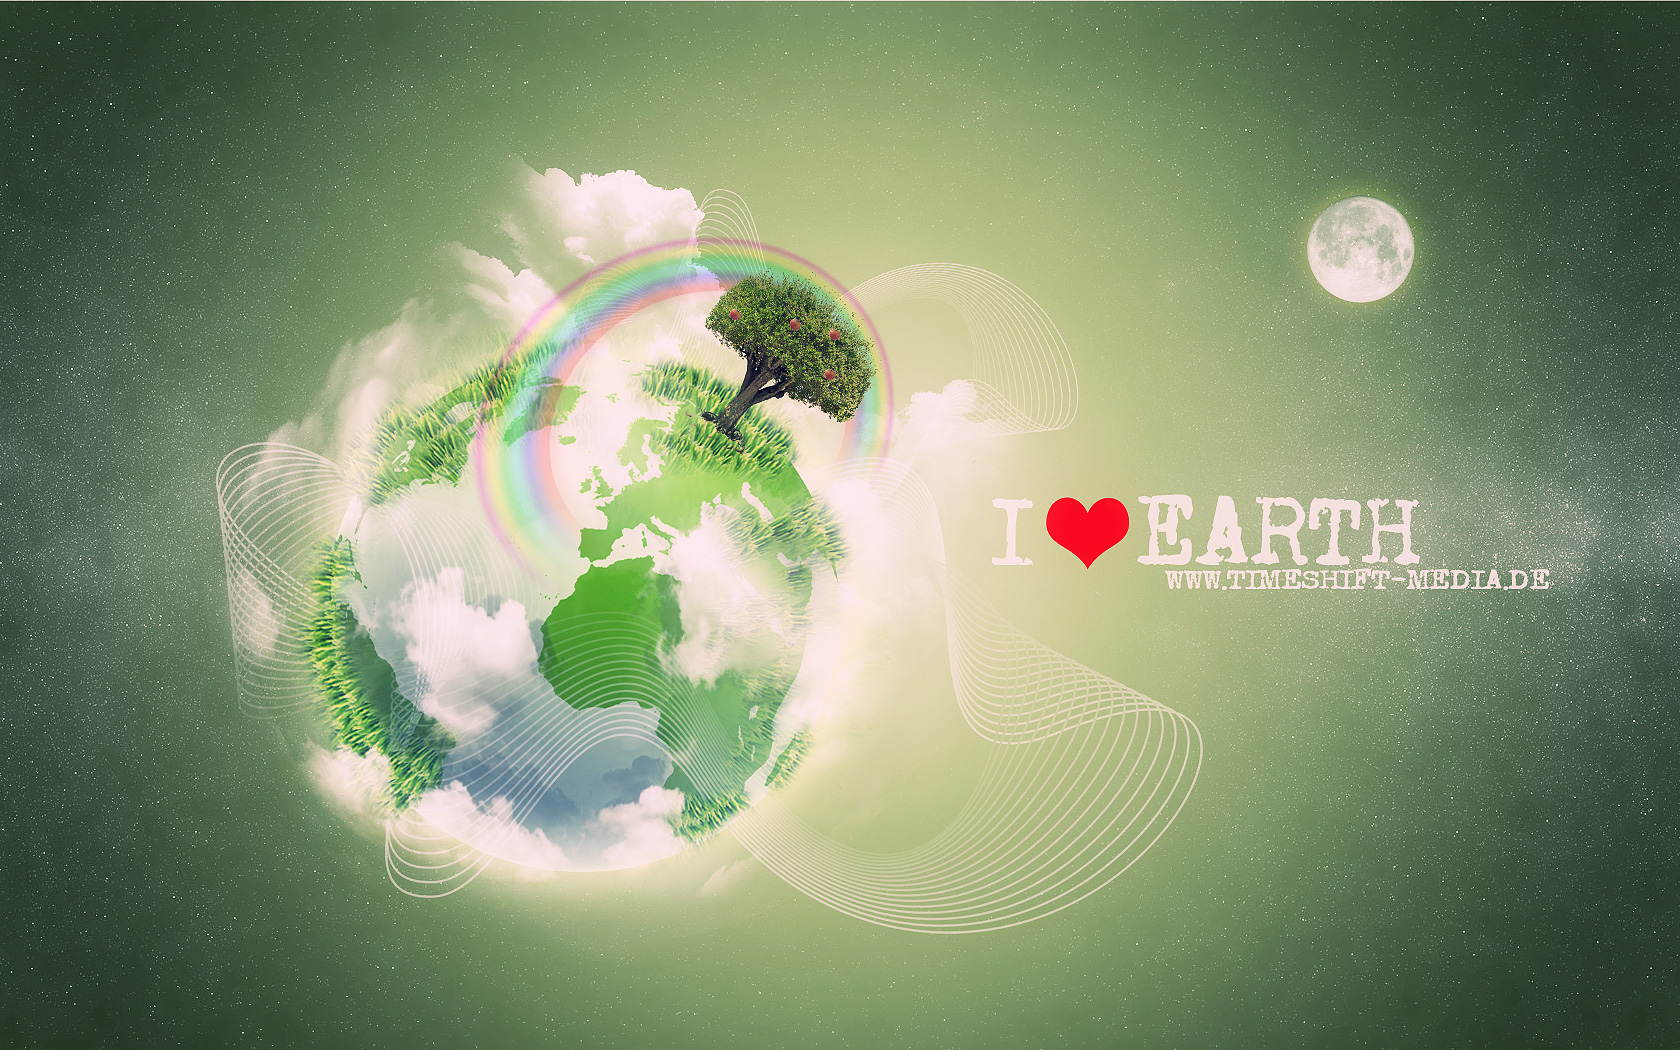 Love on earth